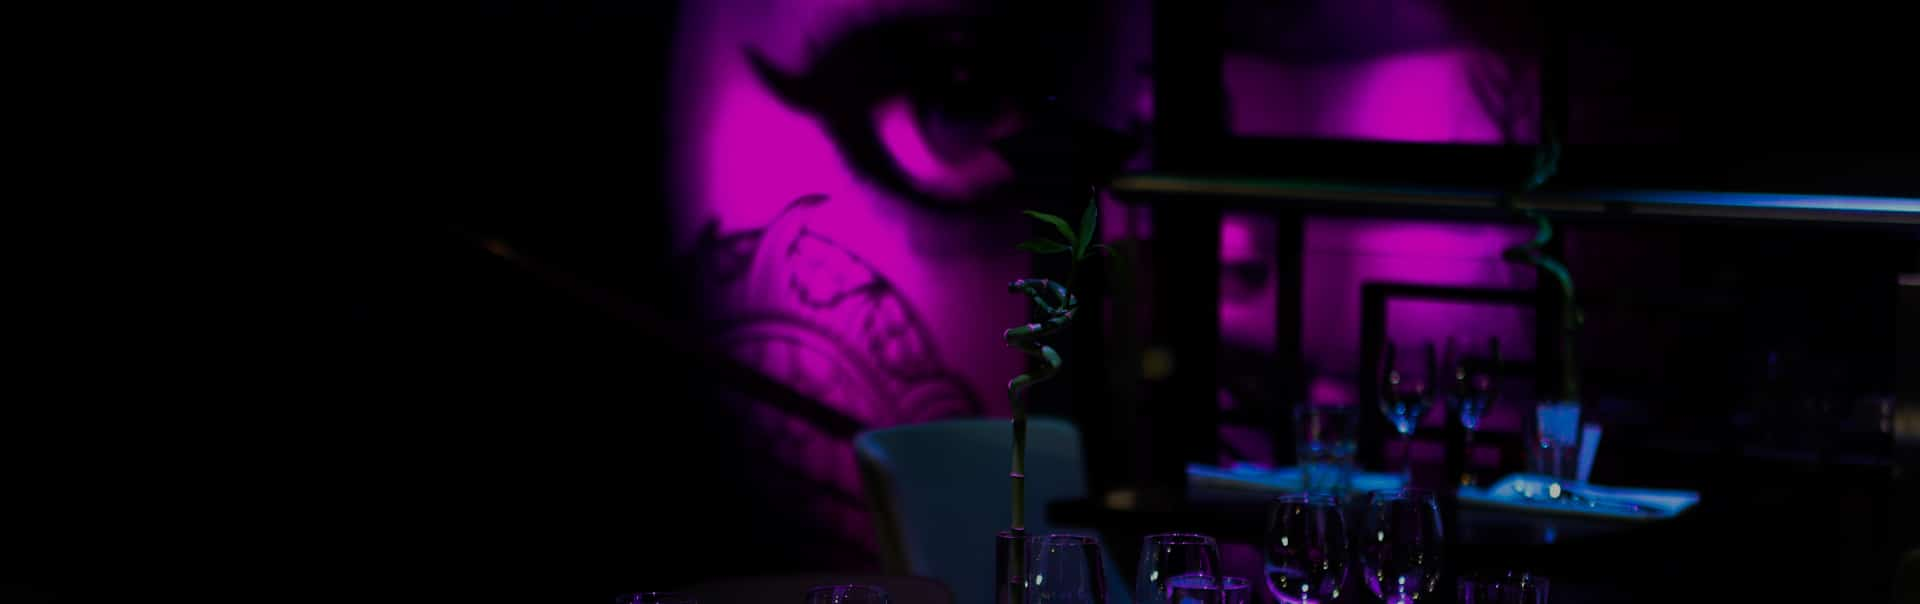 Our wall vinyl is a focal point of the Gin Thai restaurant